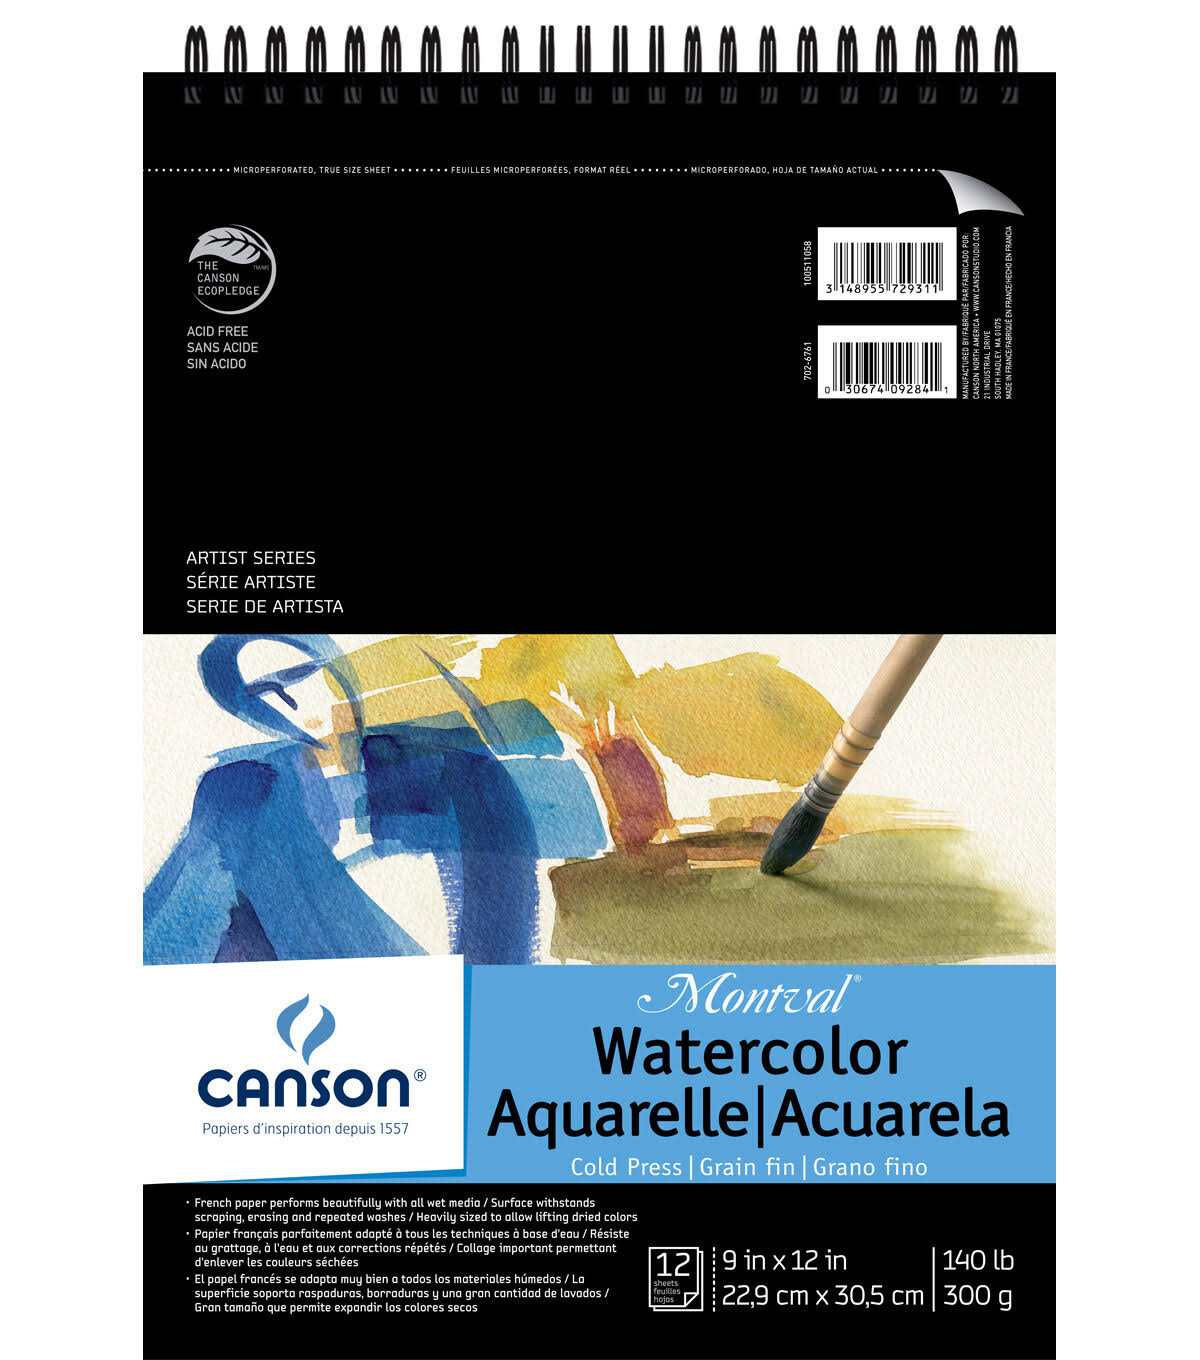 "Canson Top Spiral Bound Watercolor Pad - 12 Sheets, 9"" X 12"""